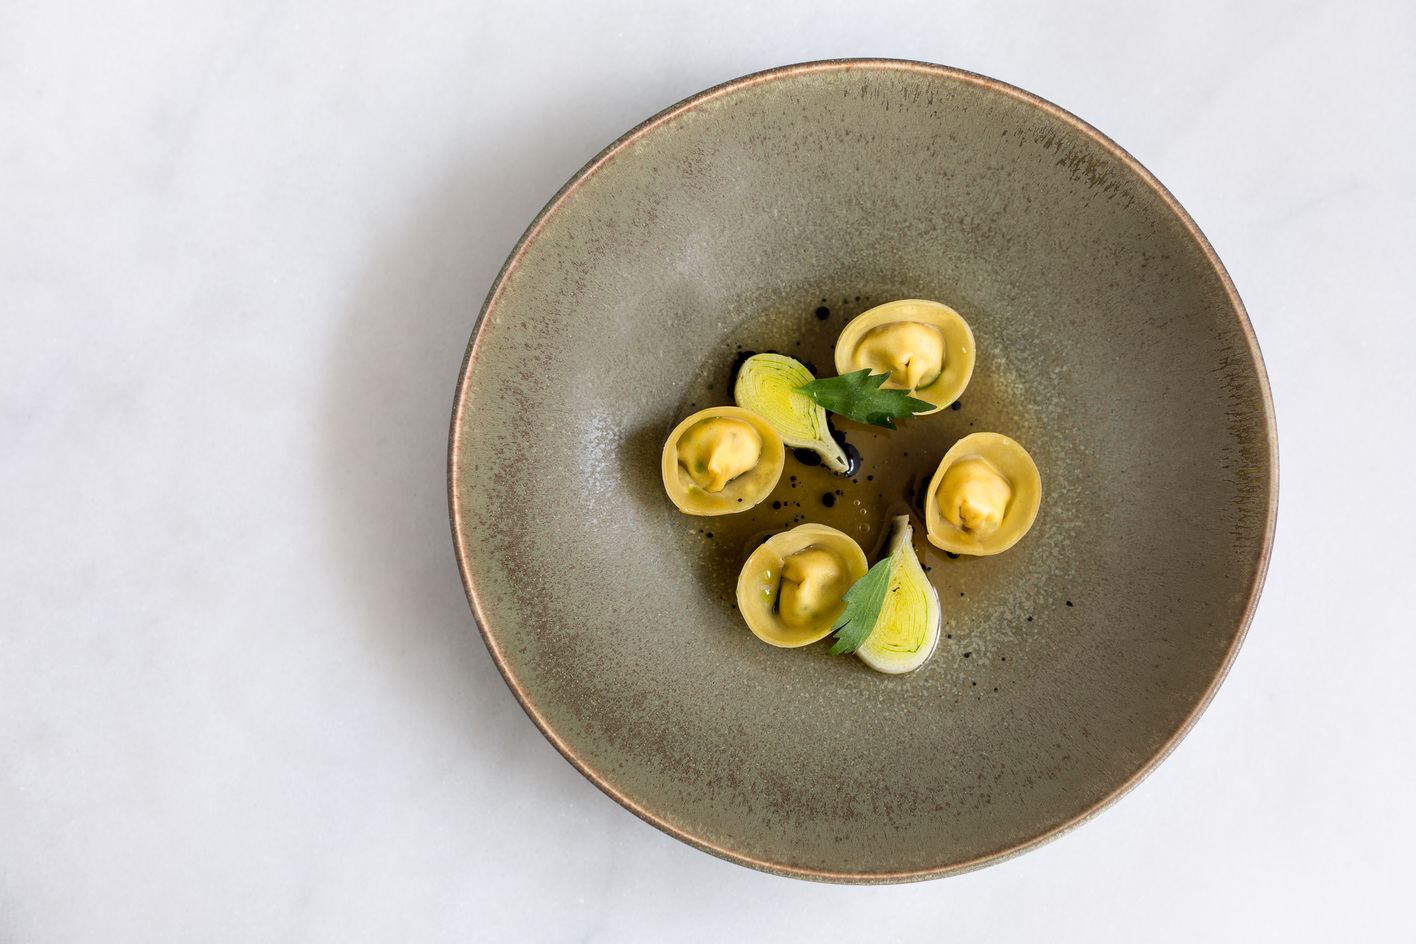 Smoked Chicken Tortellini leek hearts cooked in truffle butter by Sam Ashton-Booth, head chef at Stem Restaurant Credit Jade Nina Sarkhel 18